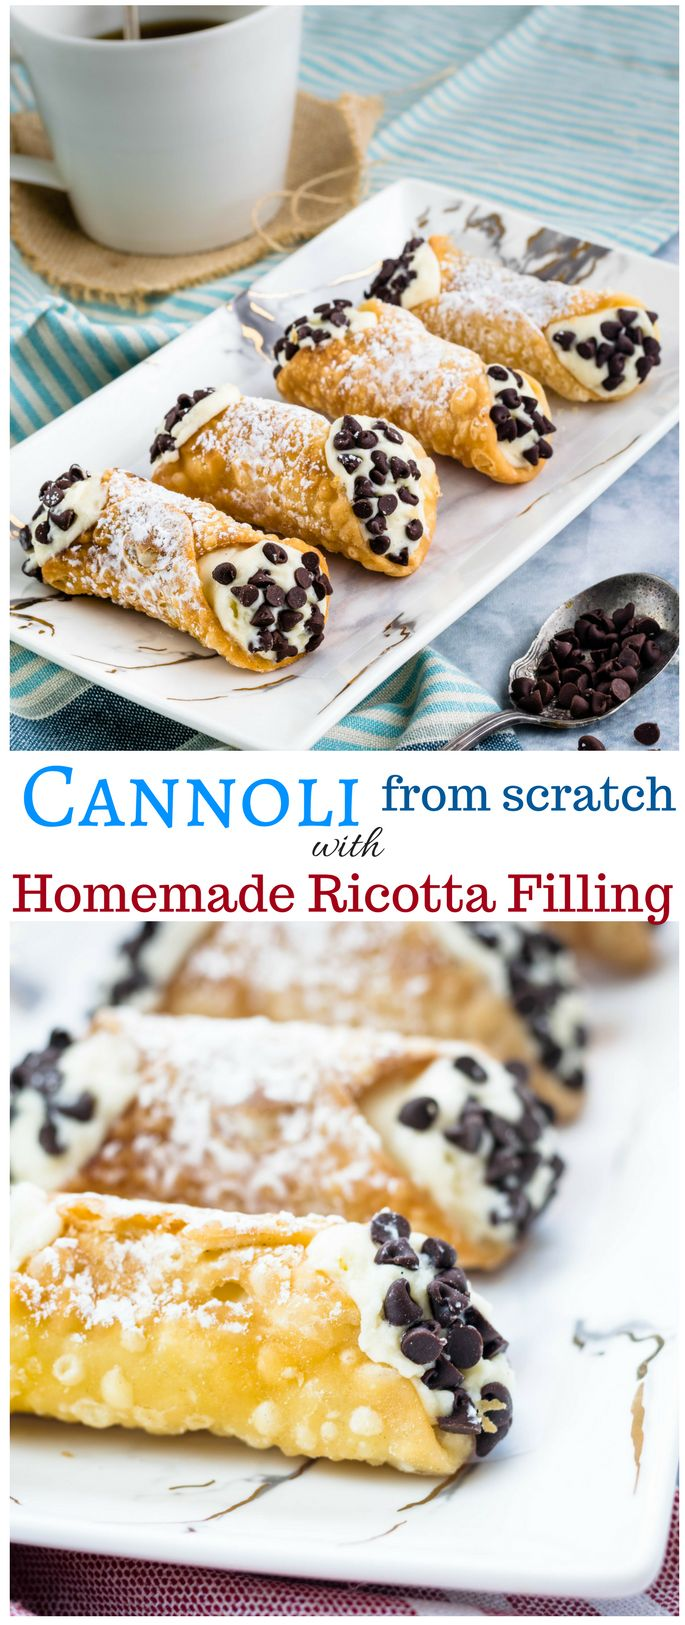 I have a love affair with this dessert. When I make cannoli, I start by making the dough for the shells and the fresh ricotta on the day before I want to eat it or serve it. The shell is a very sim…